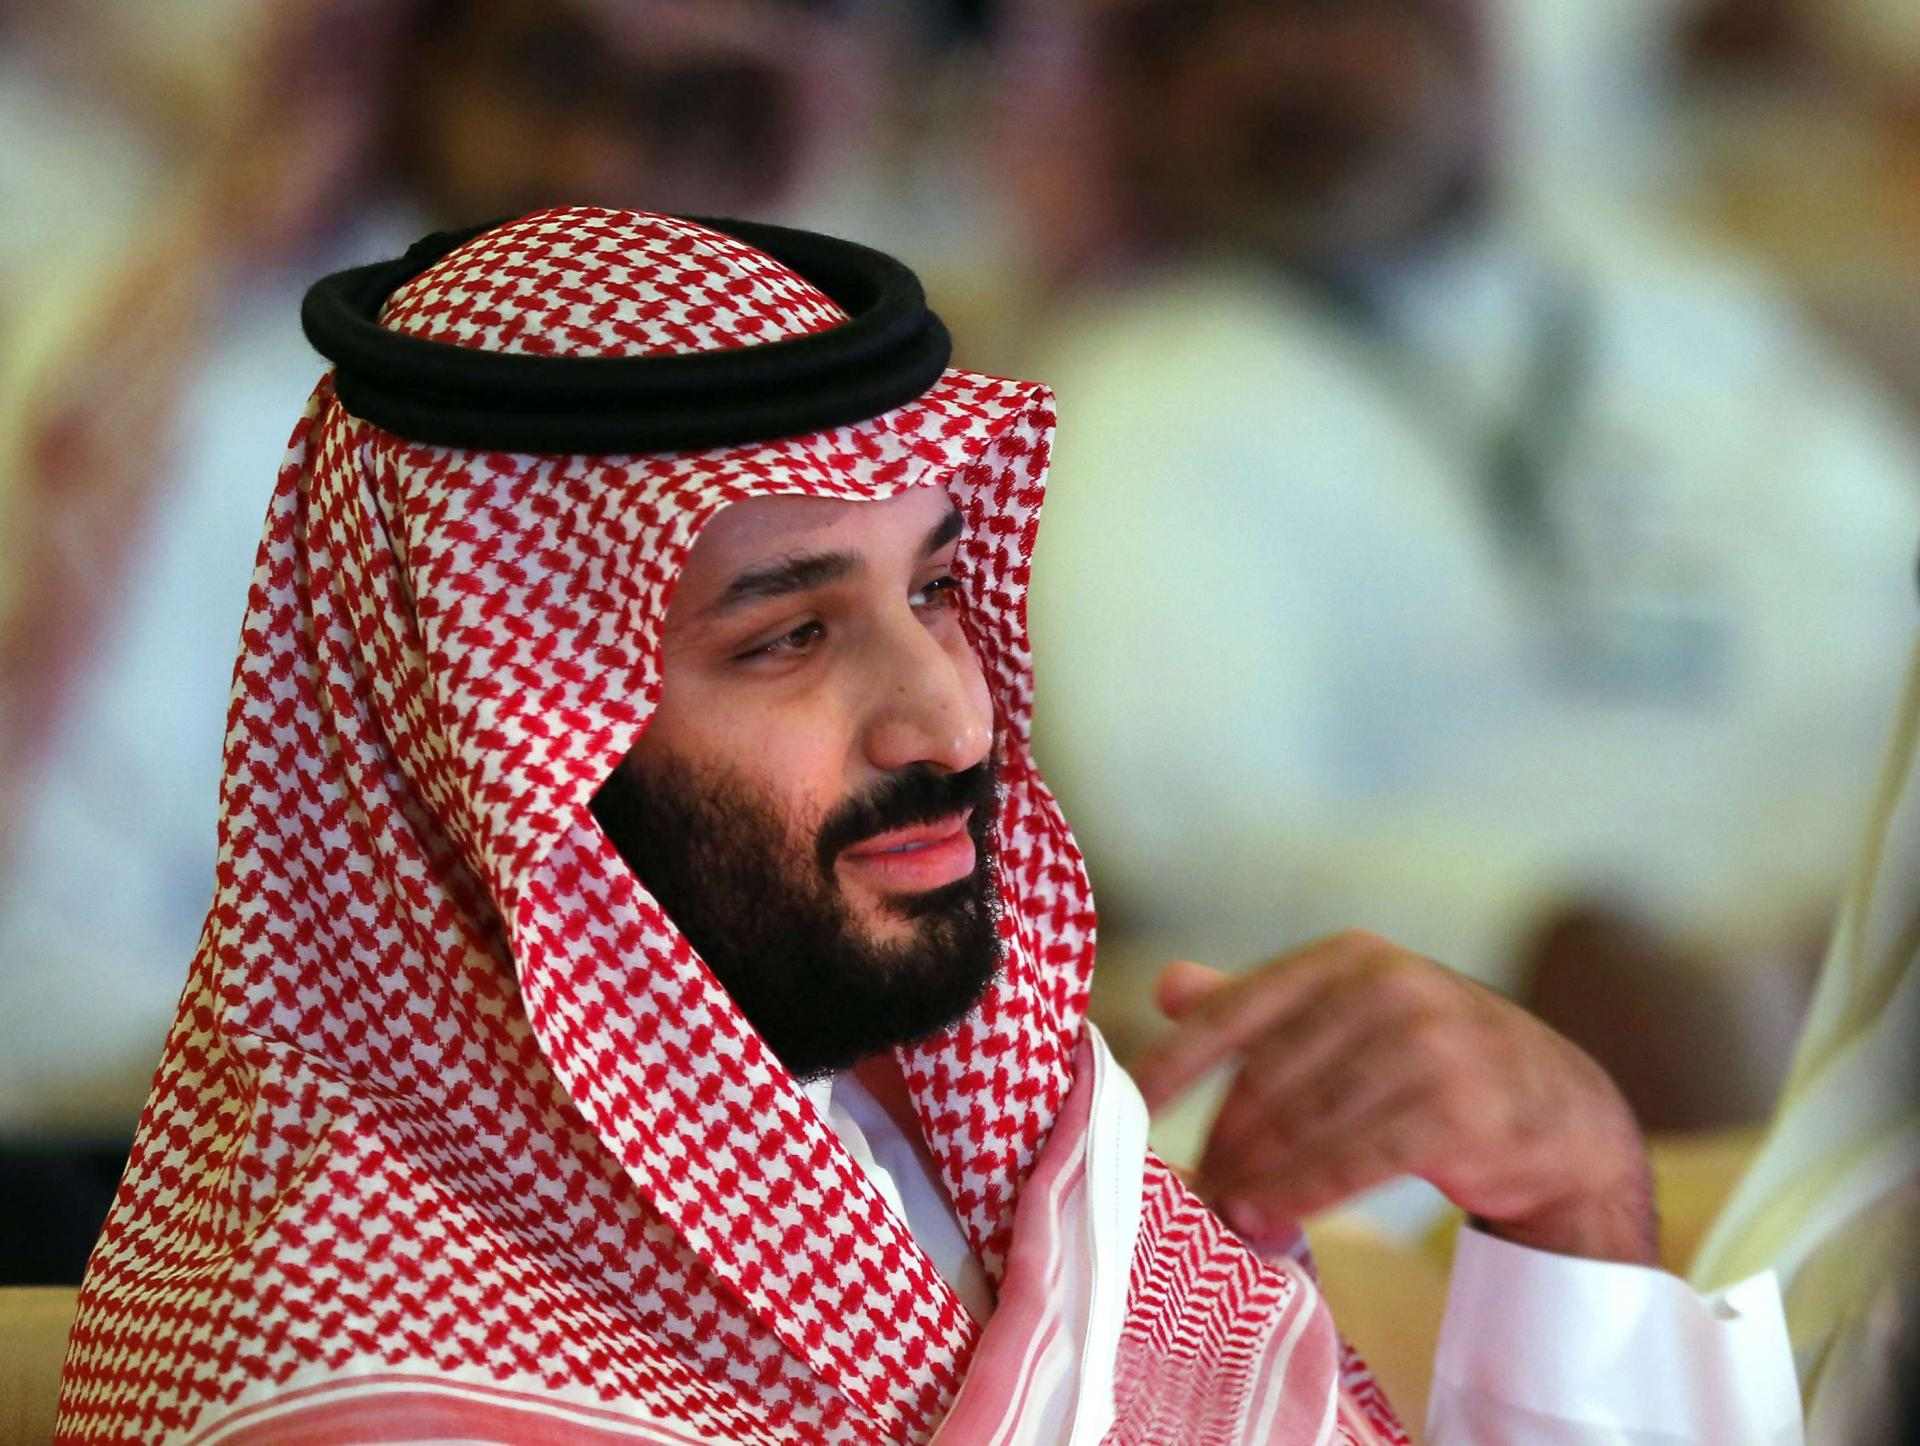 MBS has been on an Arab tour before he attends the Group of 20 summit in Argentina